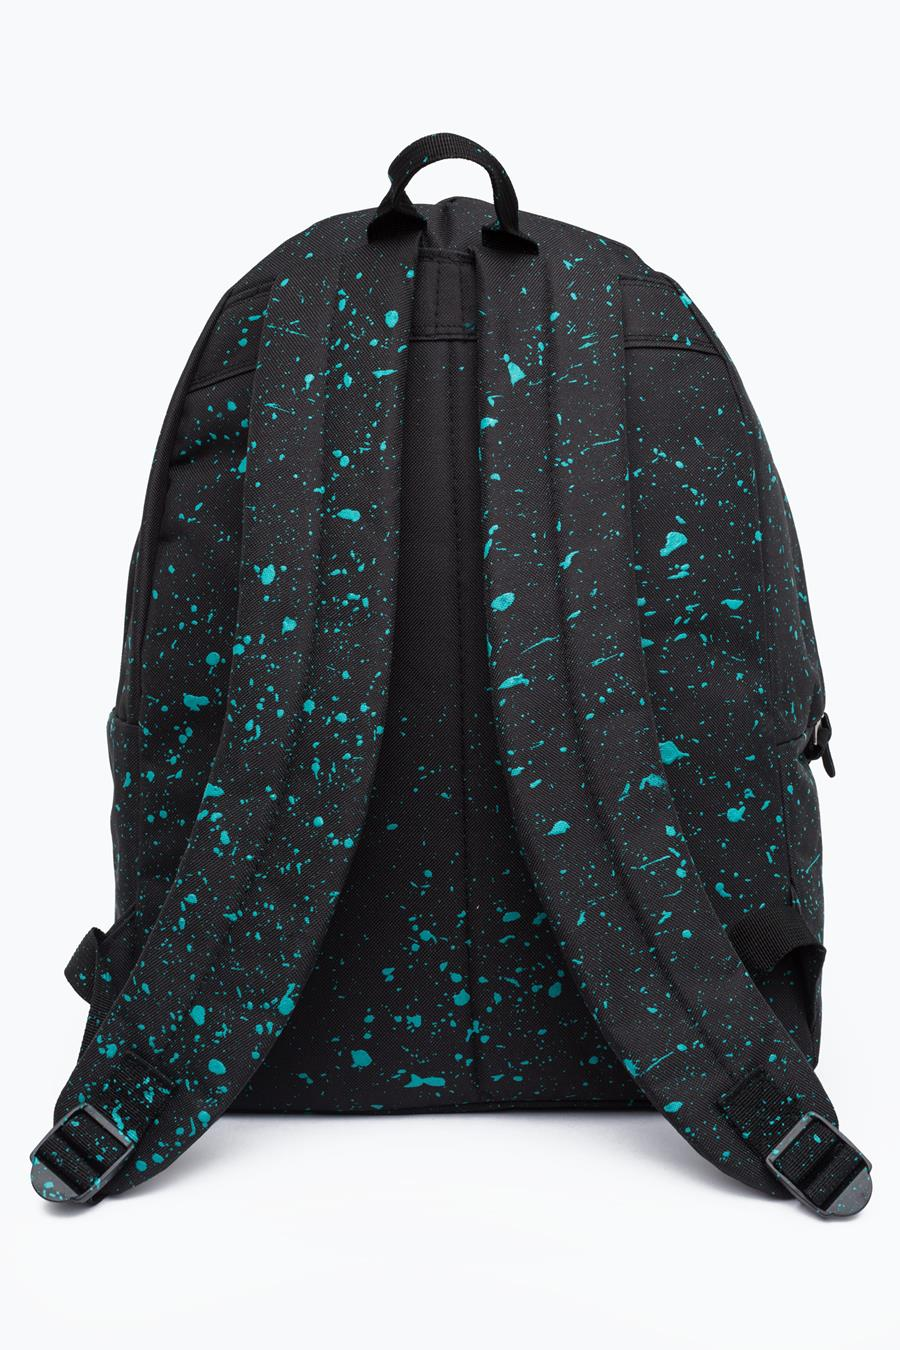 d5368b760e33 HYPE BLACK WITH MINT SPECKLE BACKPACK – JustHype ltd